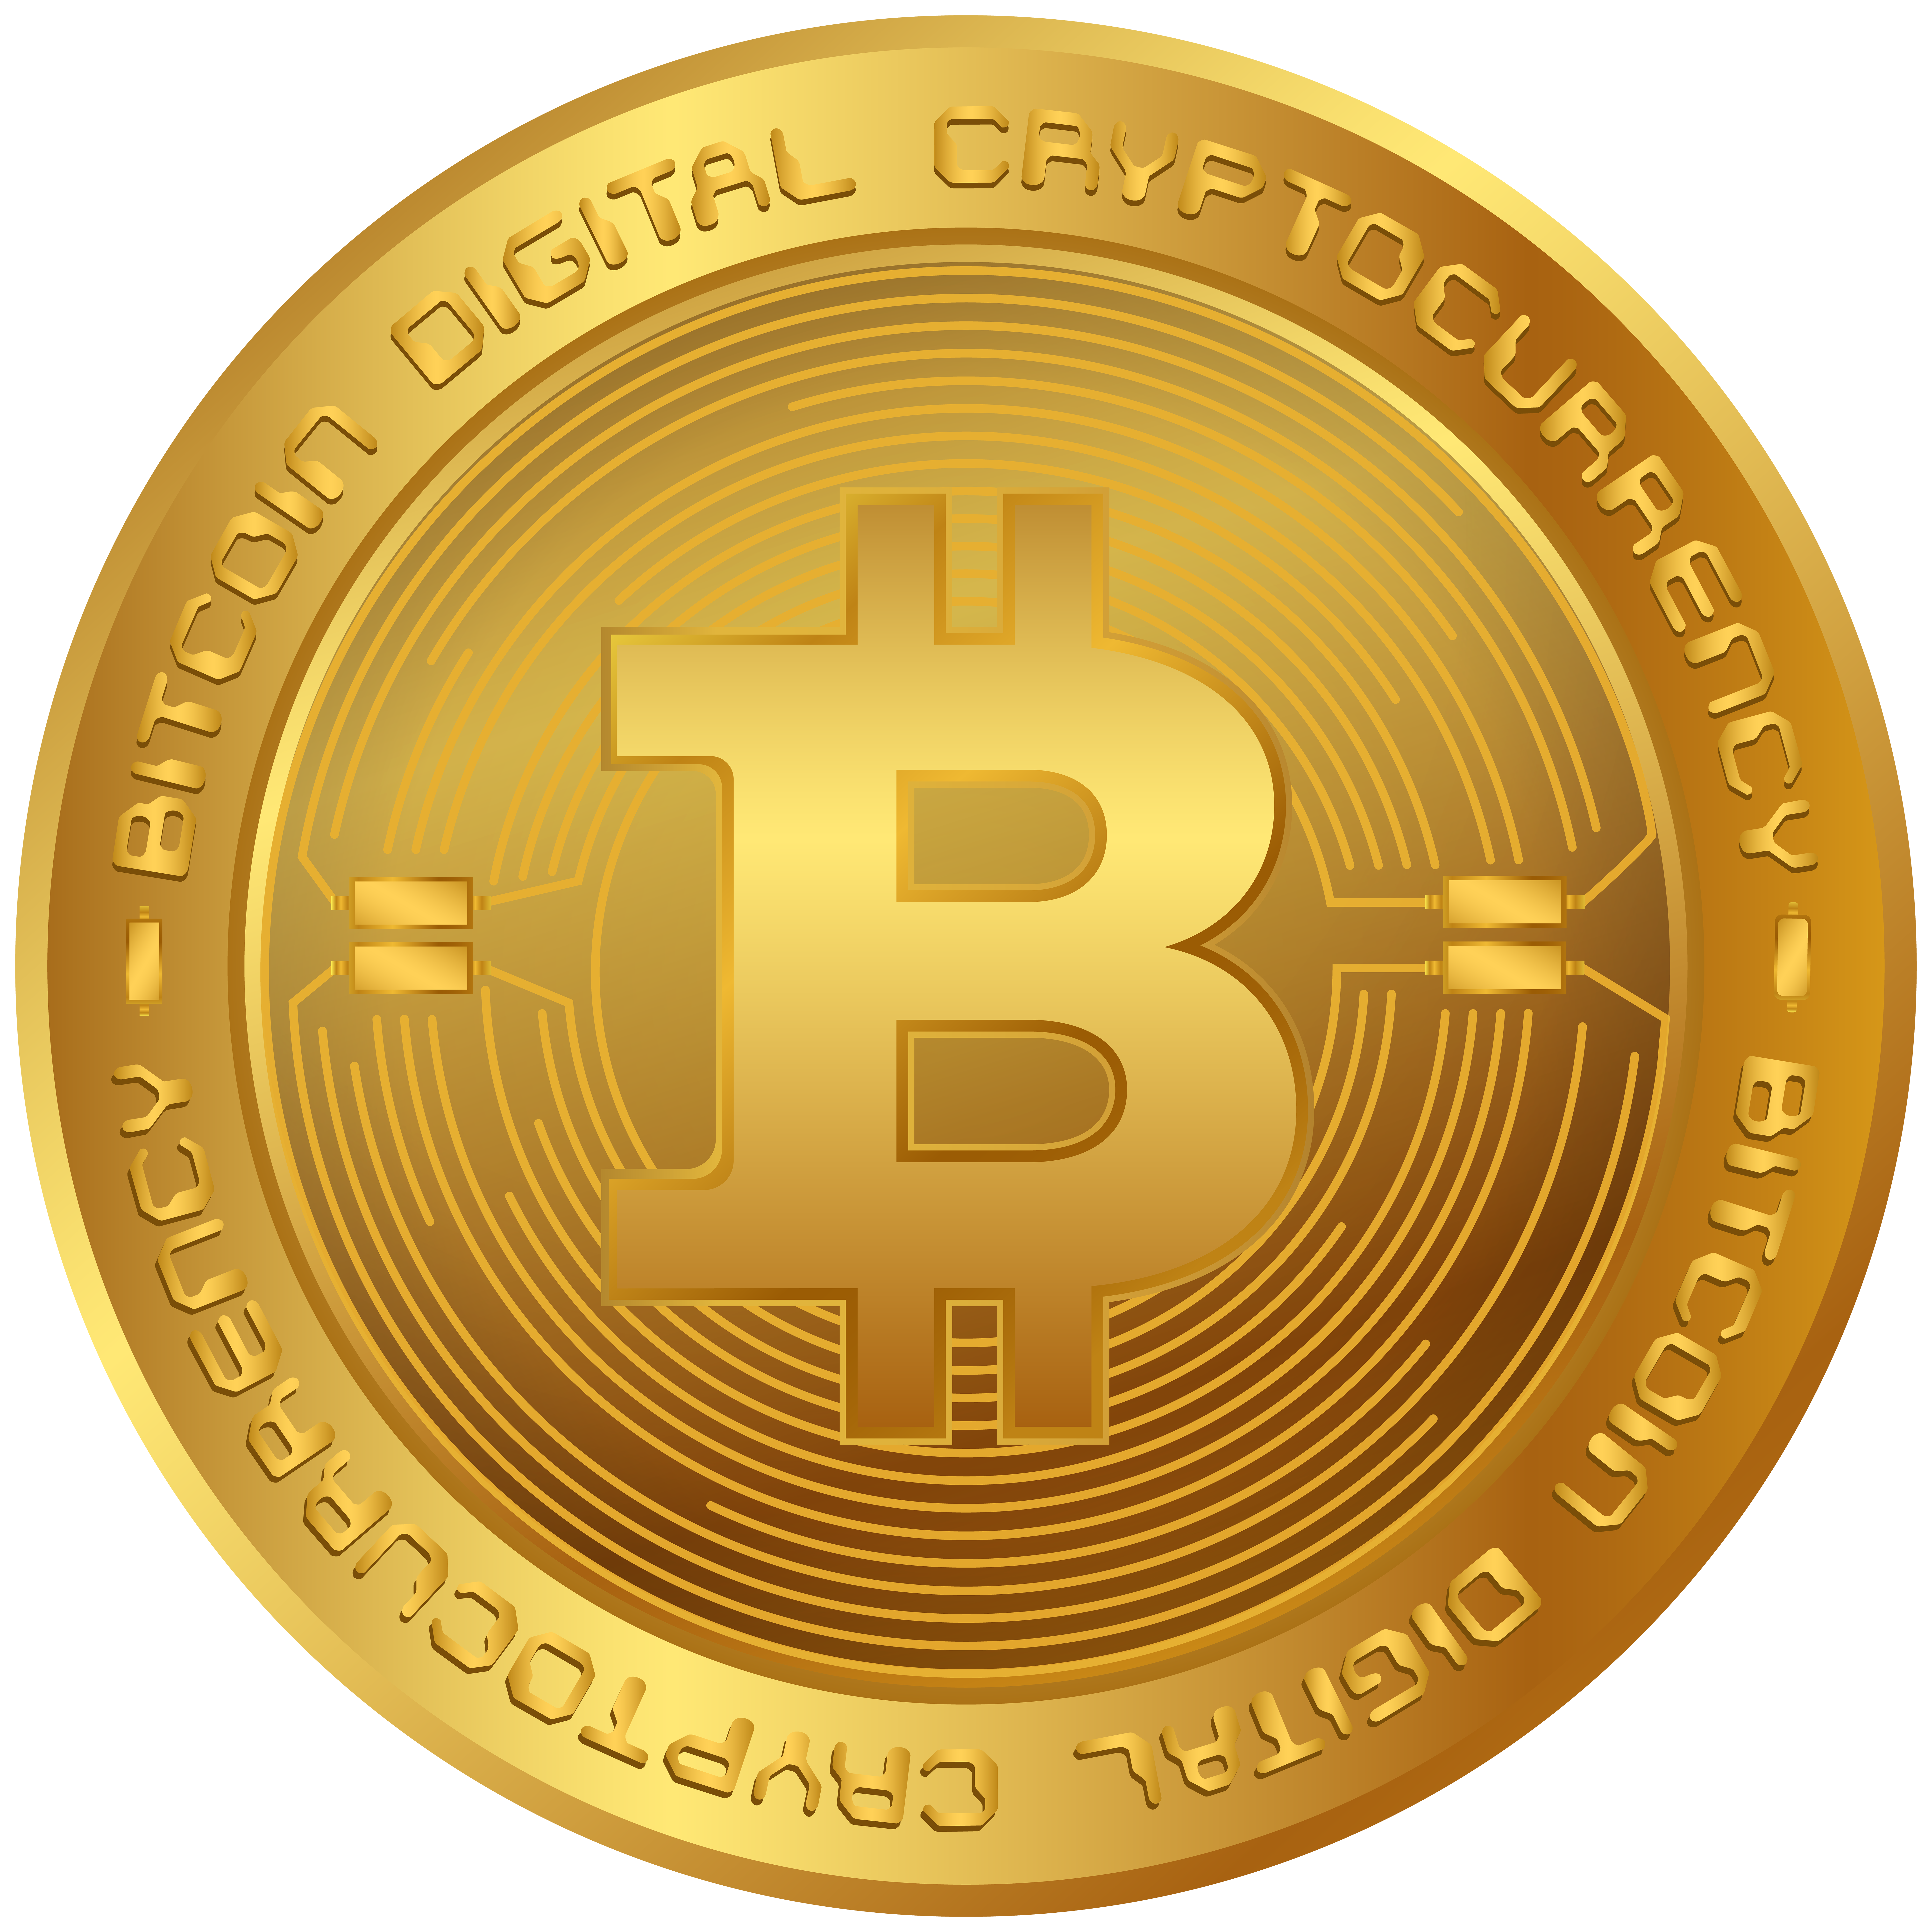 Bitcoin BTC Cryptocurrency PNG Clip Art Image.